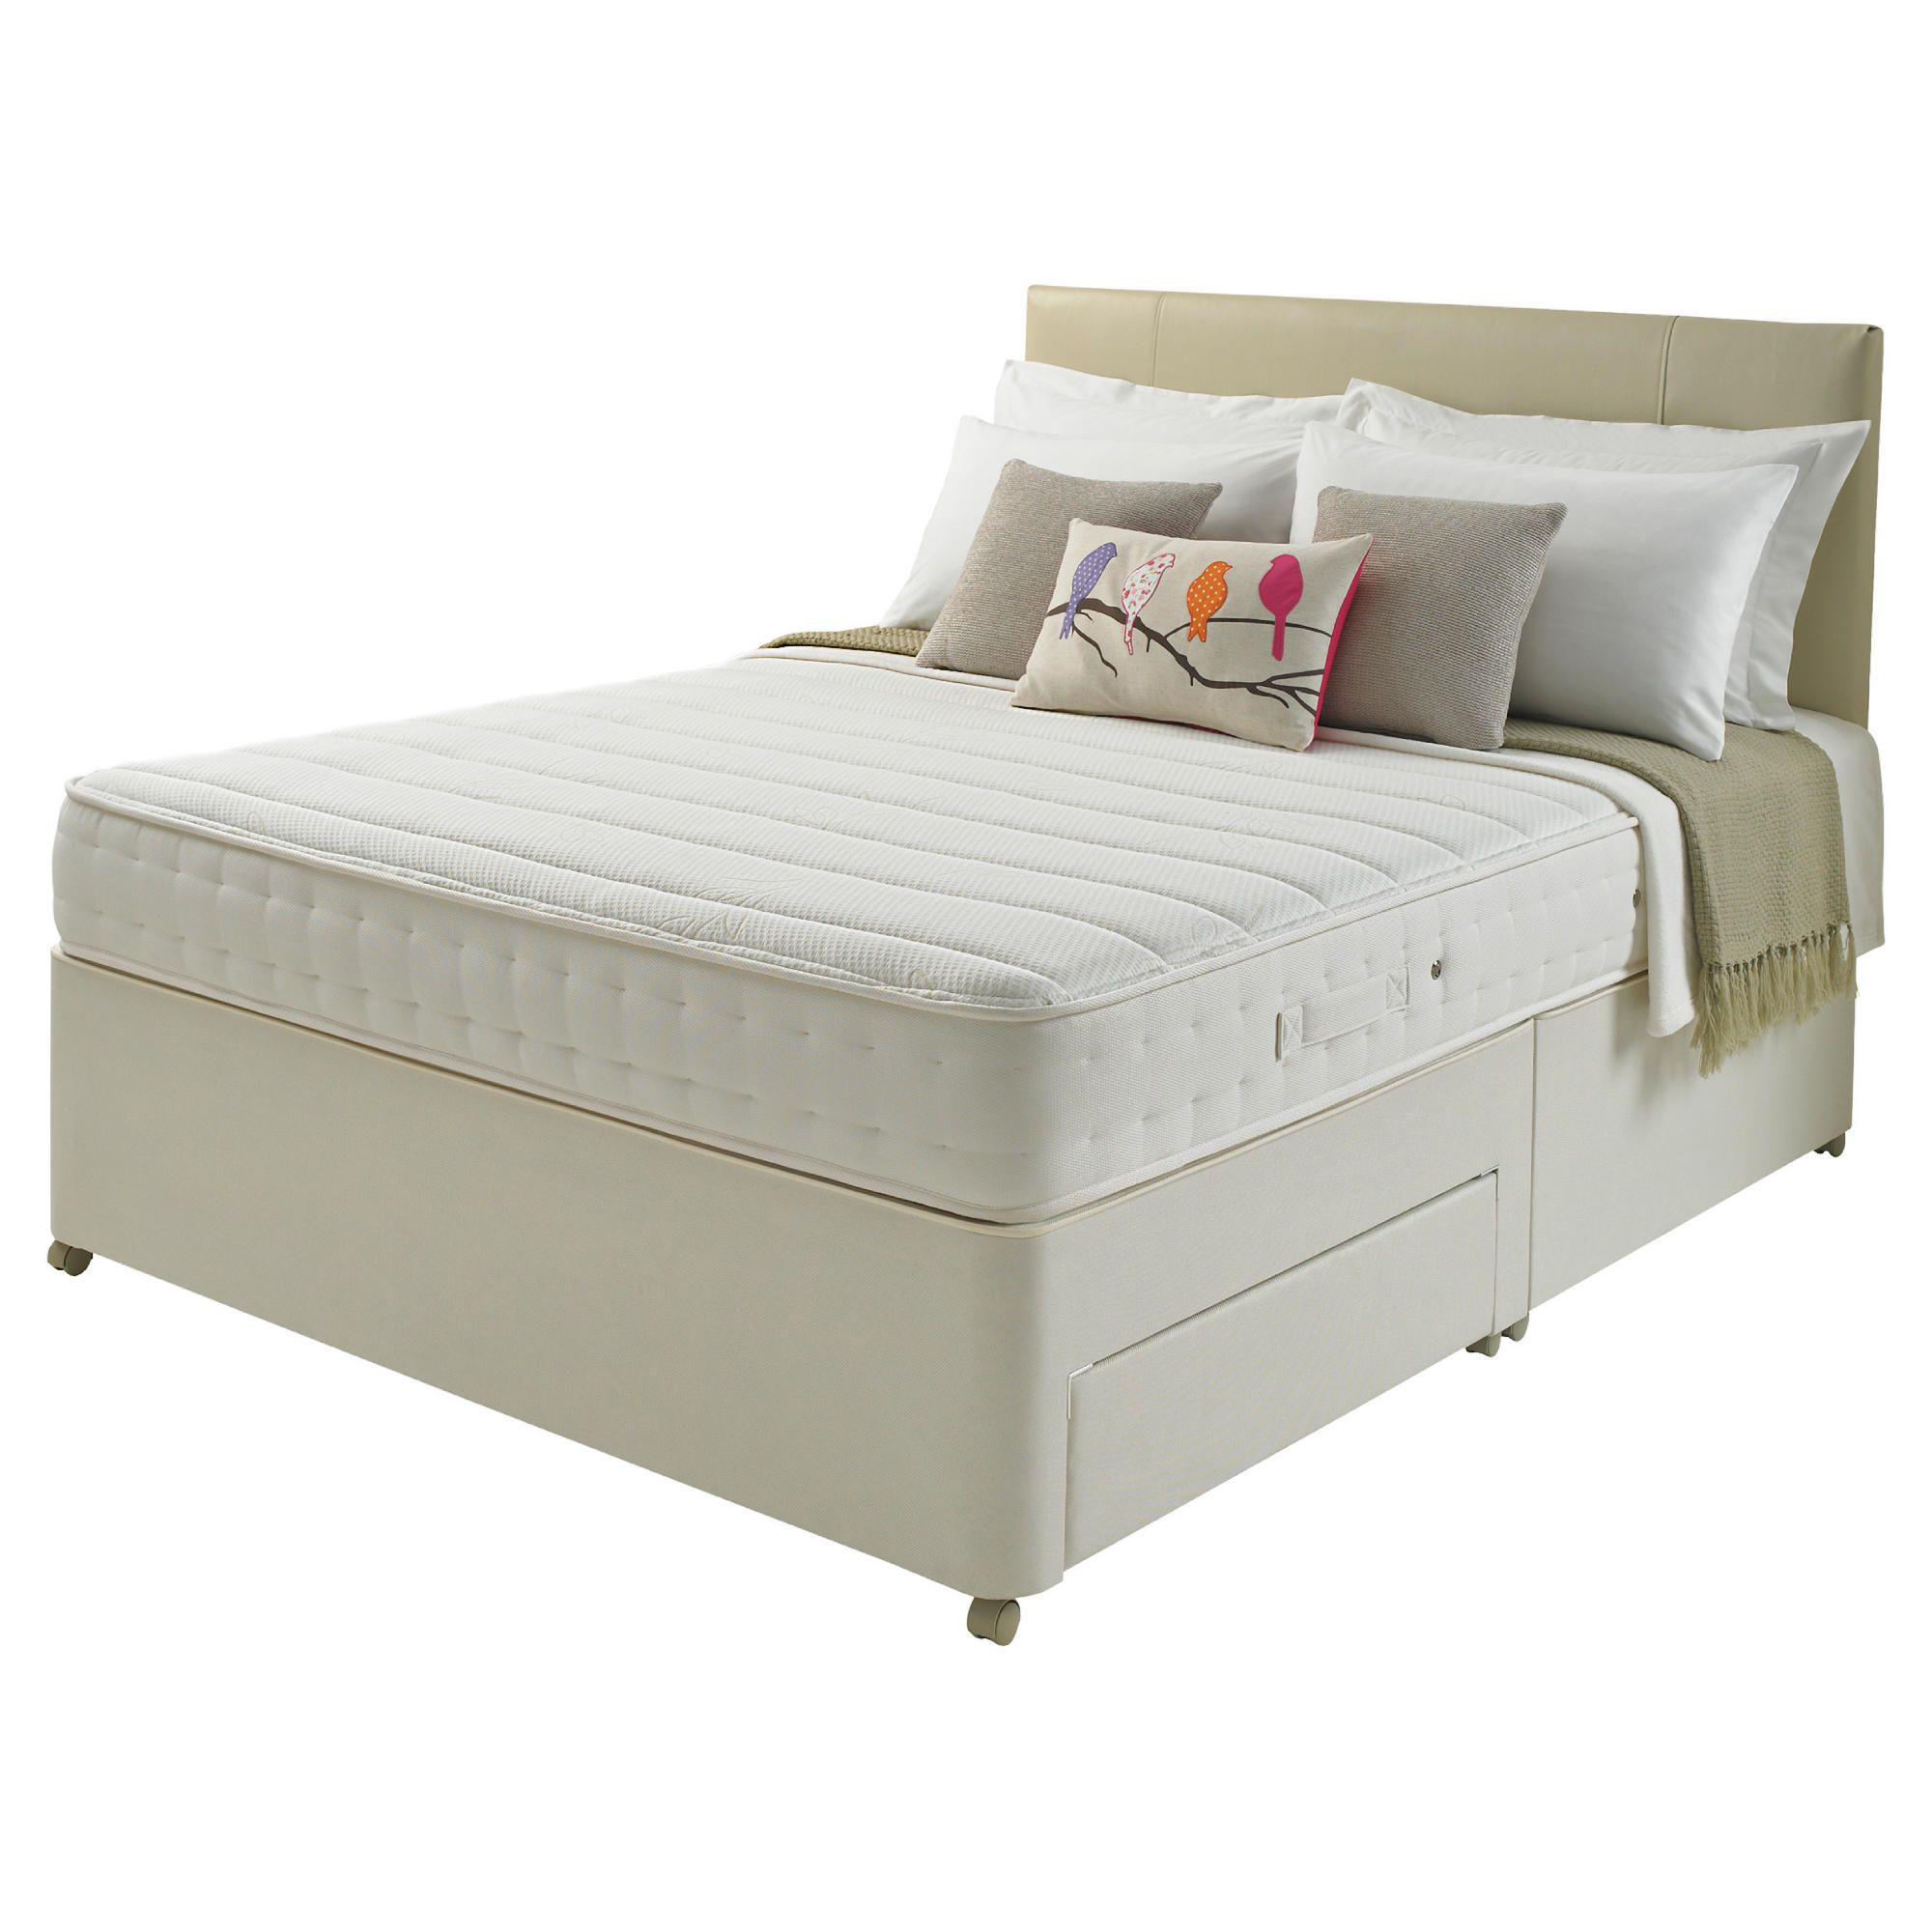 Silentnight Comfort Pocket 1000 Memory Divan Bed Bed Mattress Sale